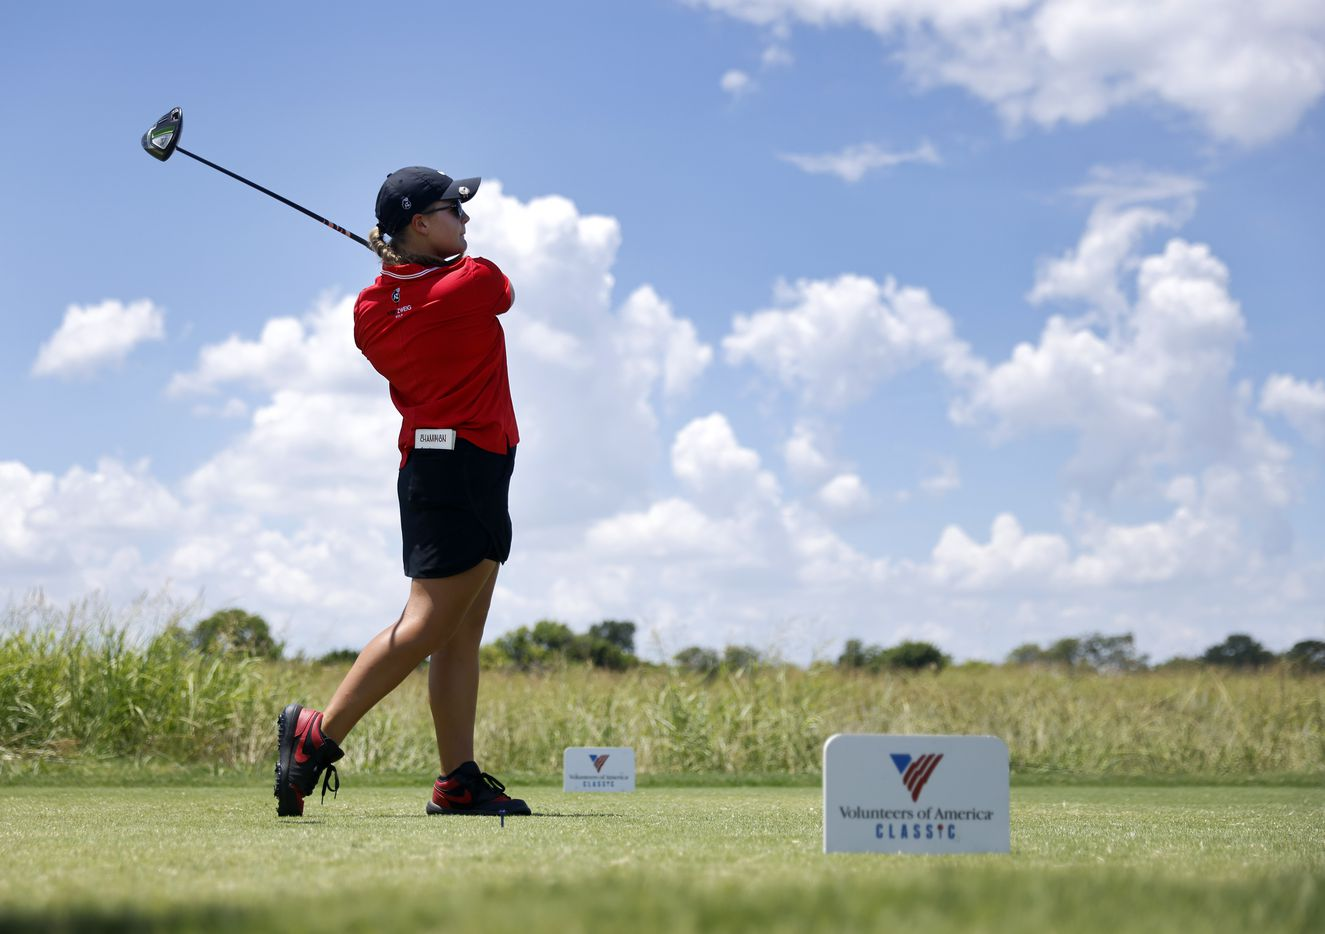 Amateur golfer Avery Zweig, 14, of McKinney tees off on No. 1 during her opening round of the LPGA VOA Classic at the Old American Golf Club in The Colony, Texas, Thursday, July 1, 2021. (Tom Fox/The Dallas Morning News)